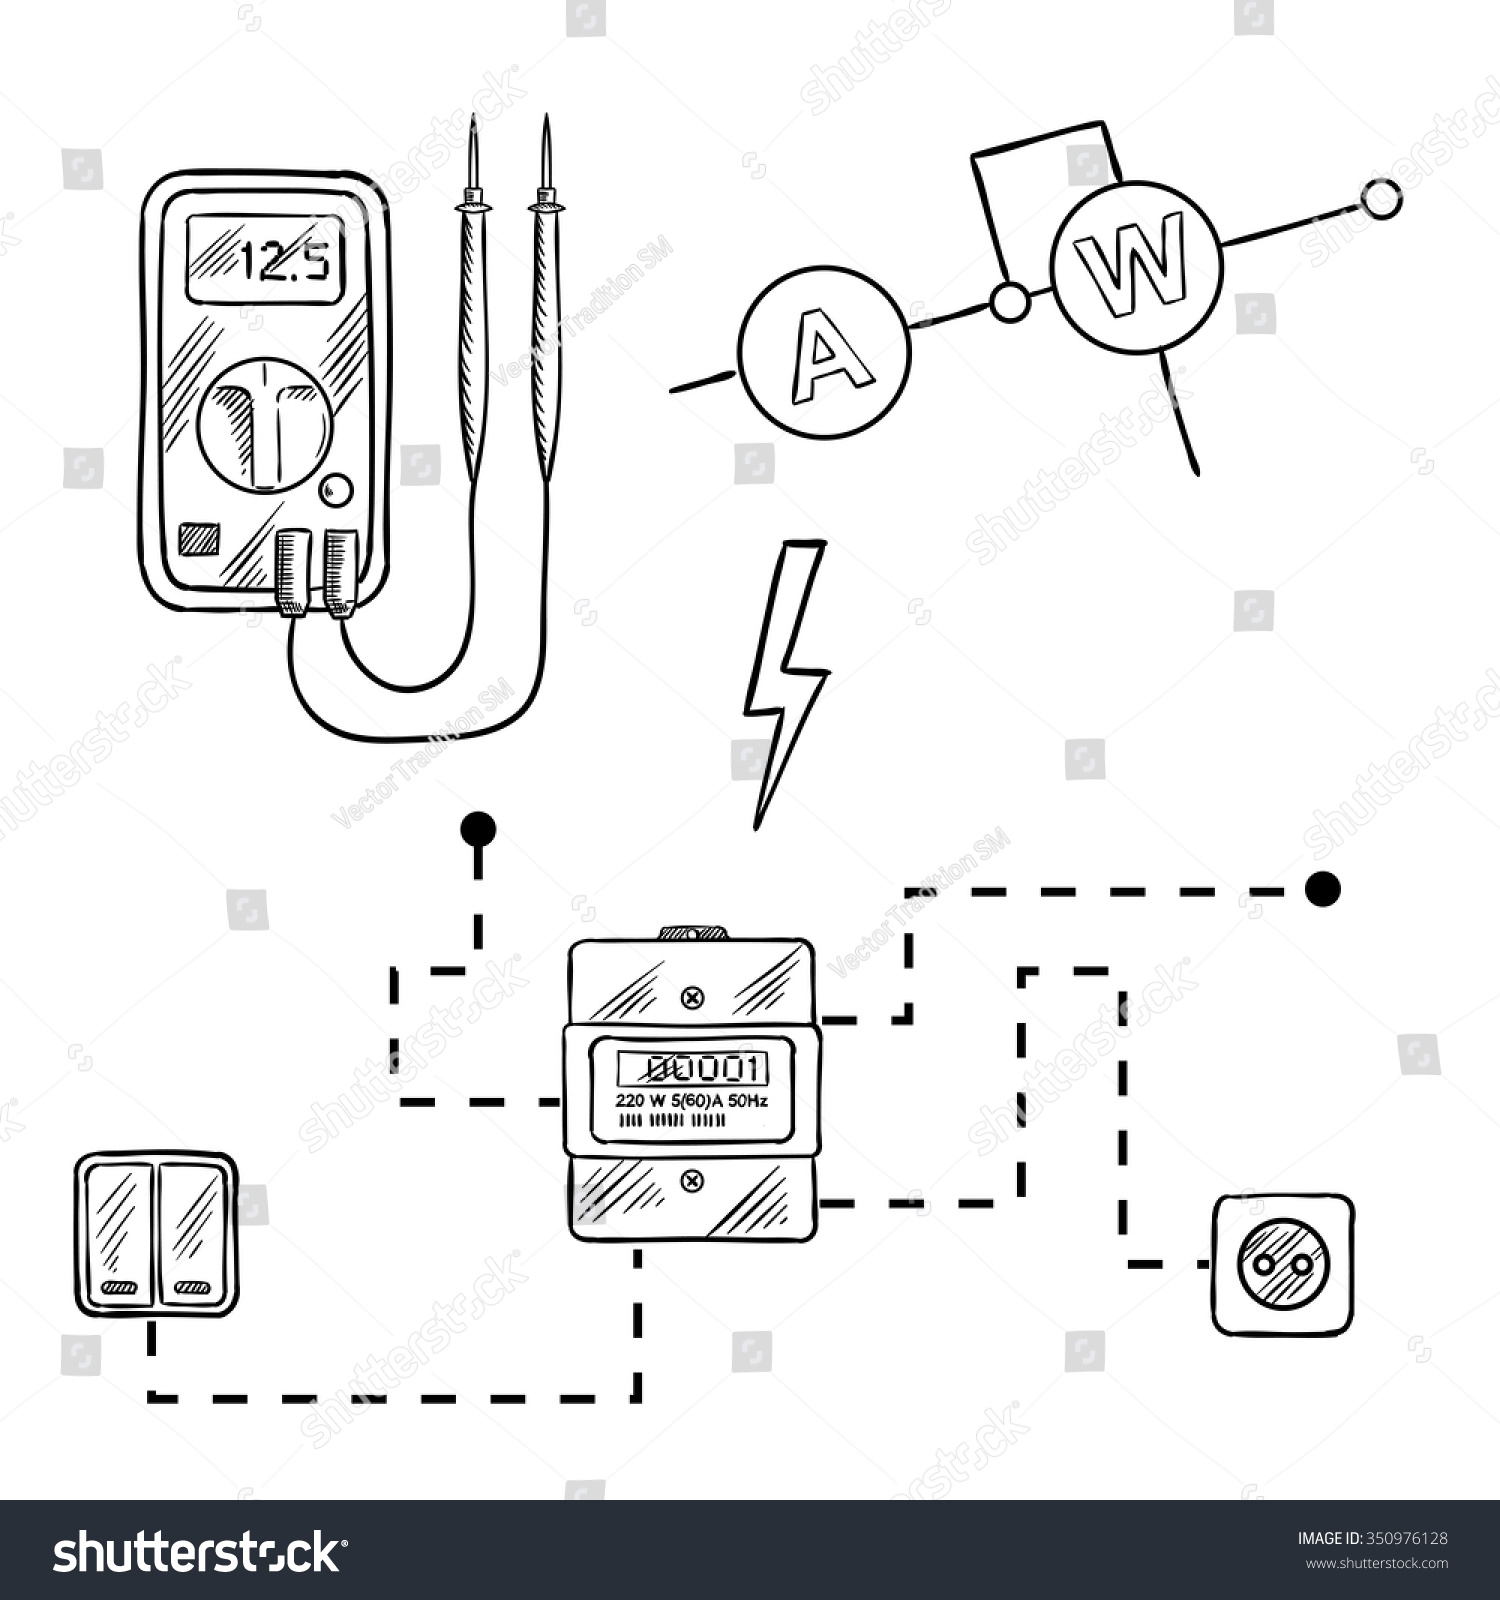 Digital Voltmeter Electricity Meter Socket Switches Stock Vector Wiring Diagram Icons With And Electrical Circuit Sketch